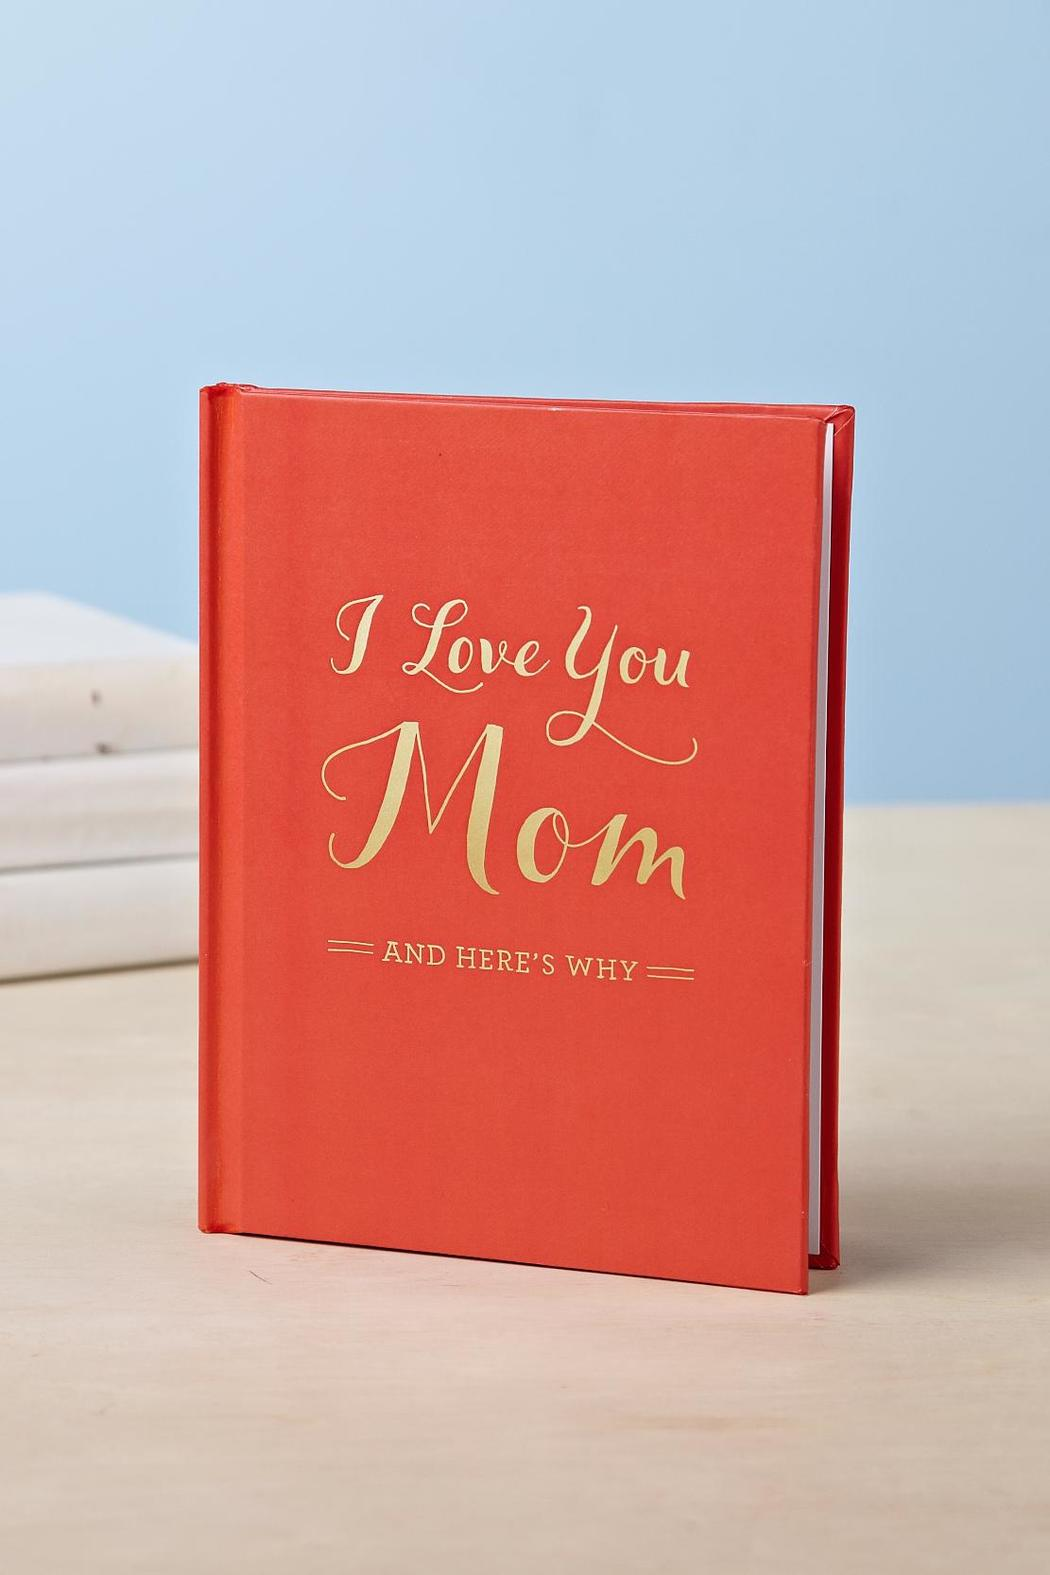 Compendium Love You Mom - Main Image